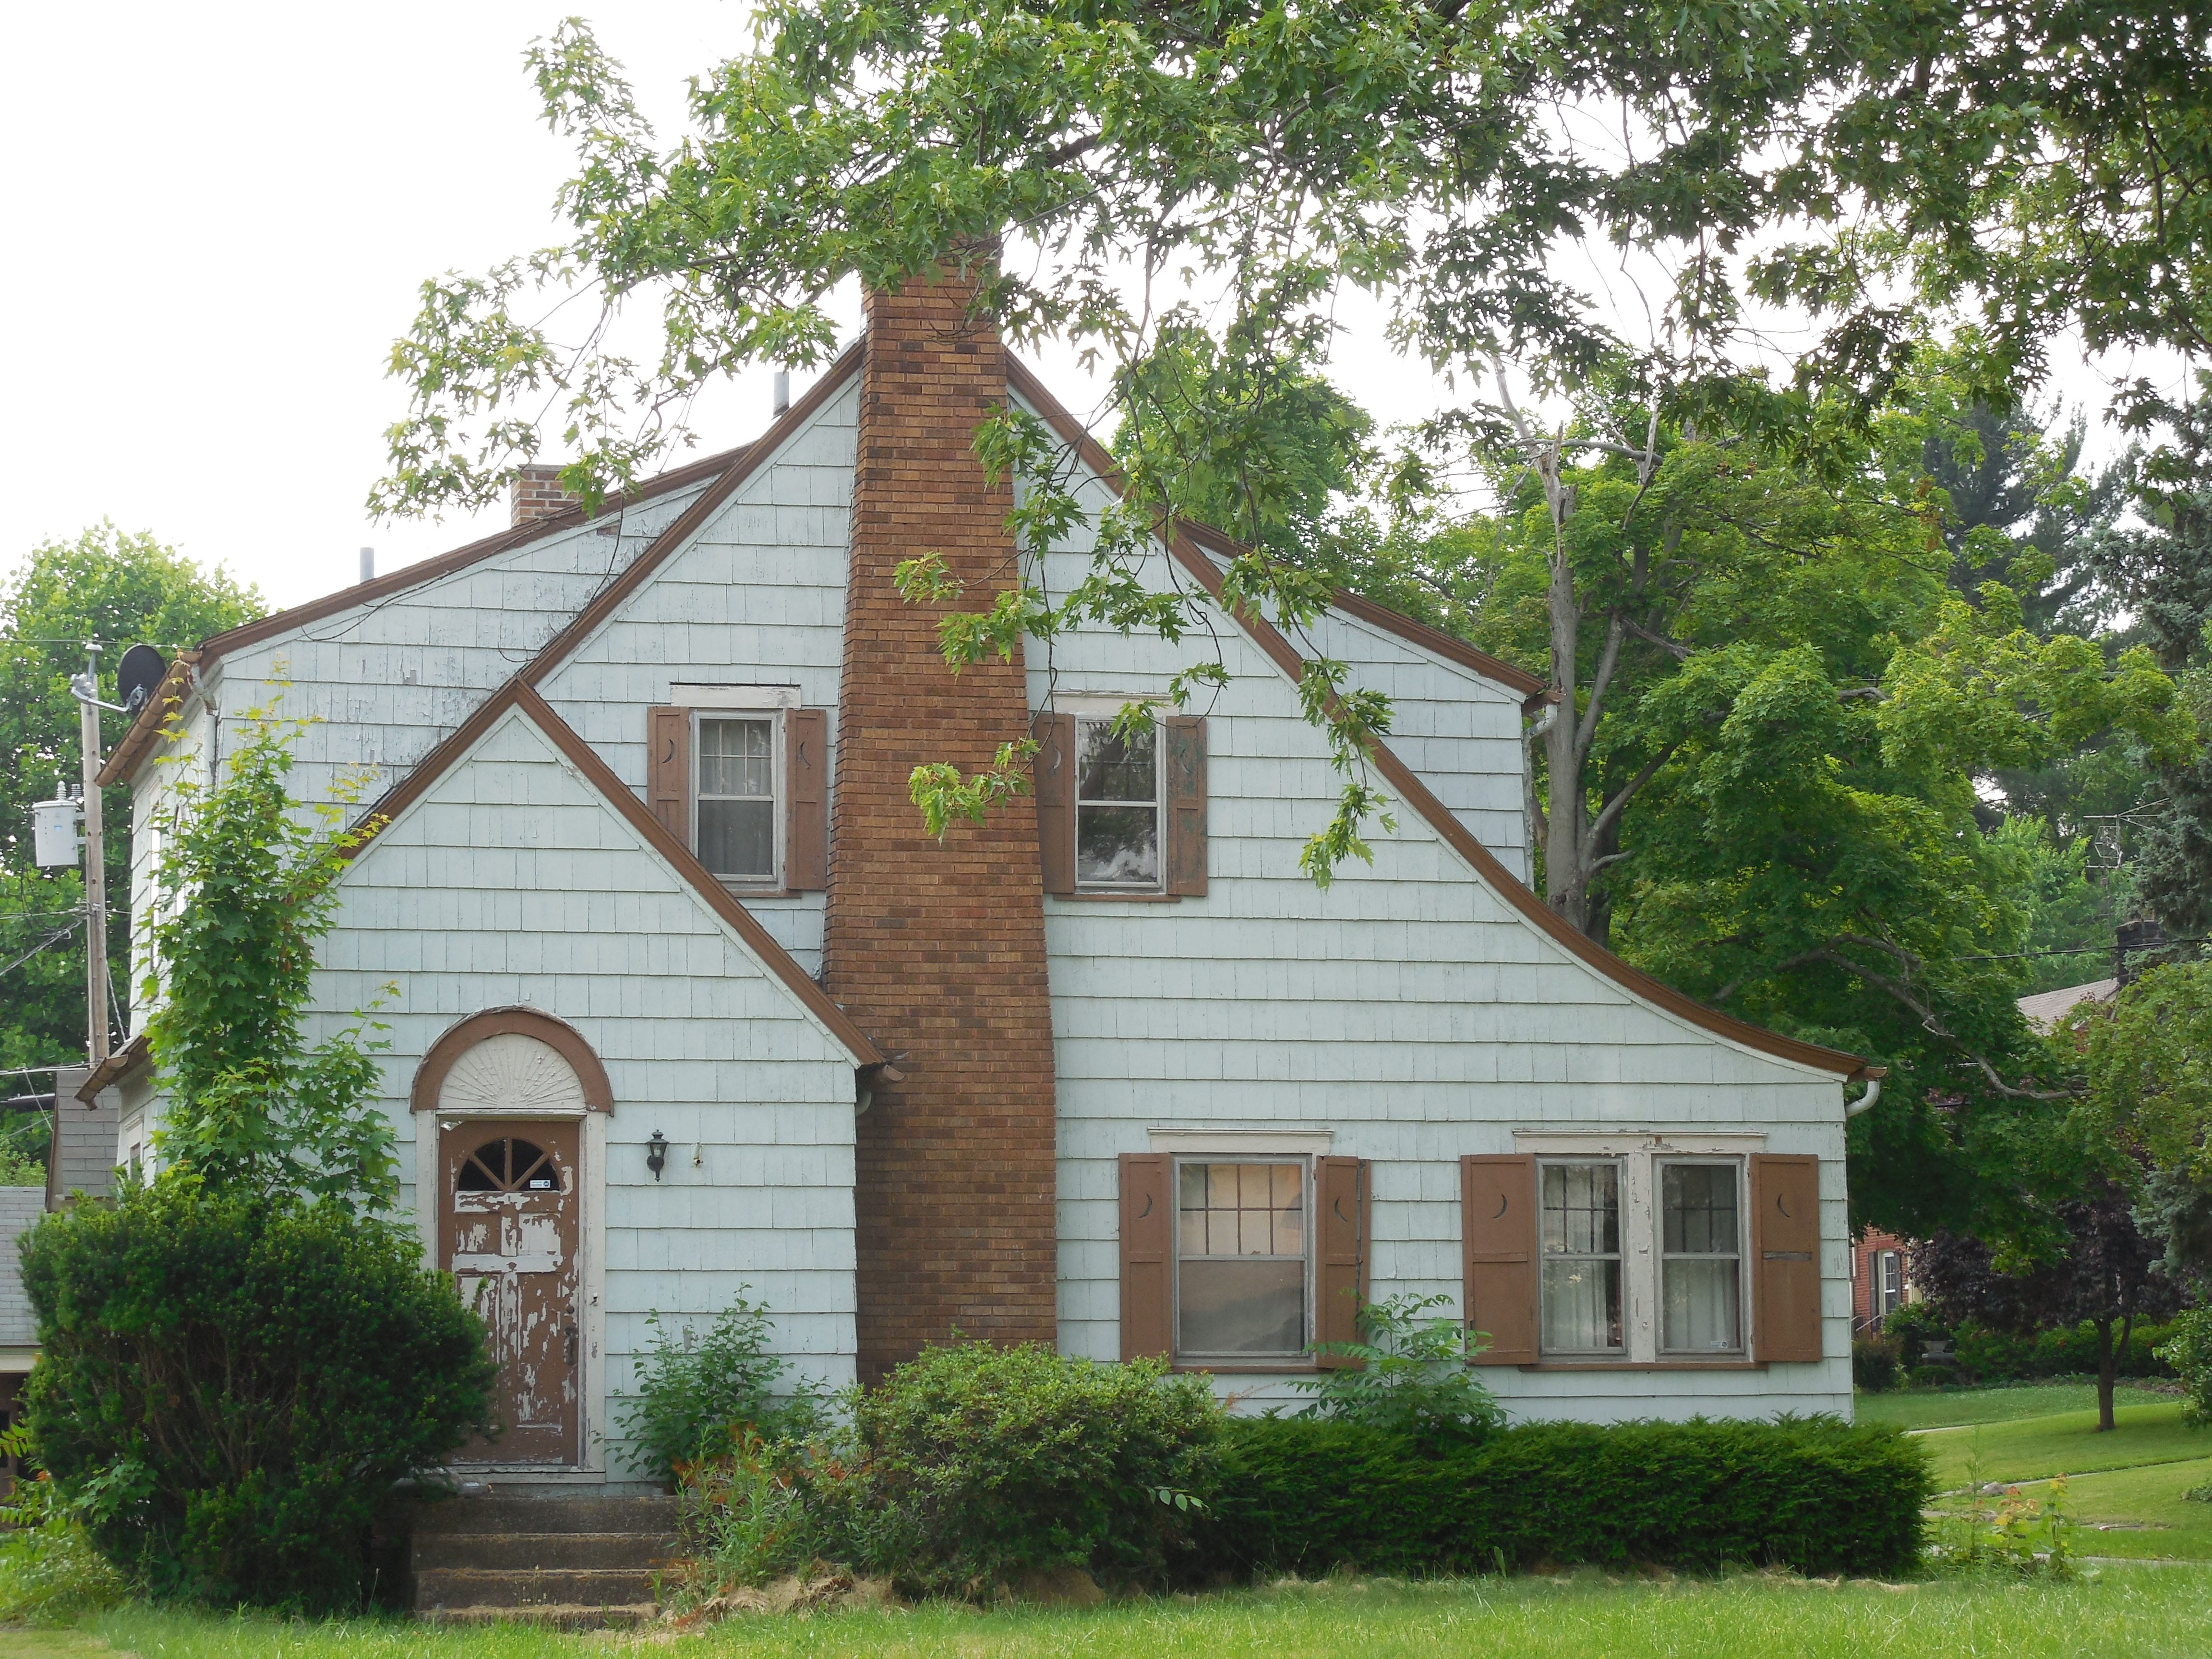 This property was owned by someone in Miami, Florida. It was vacant, tax delinquent, and ultimately acquired by the Land Bank and then transferred to Youngstown Neighborhood Development Corp.